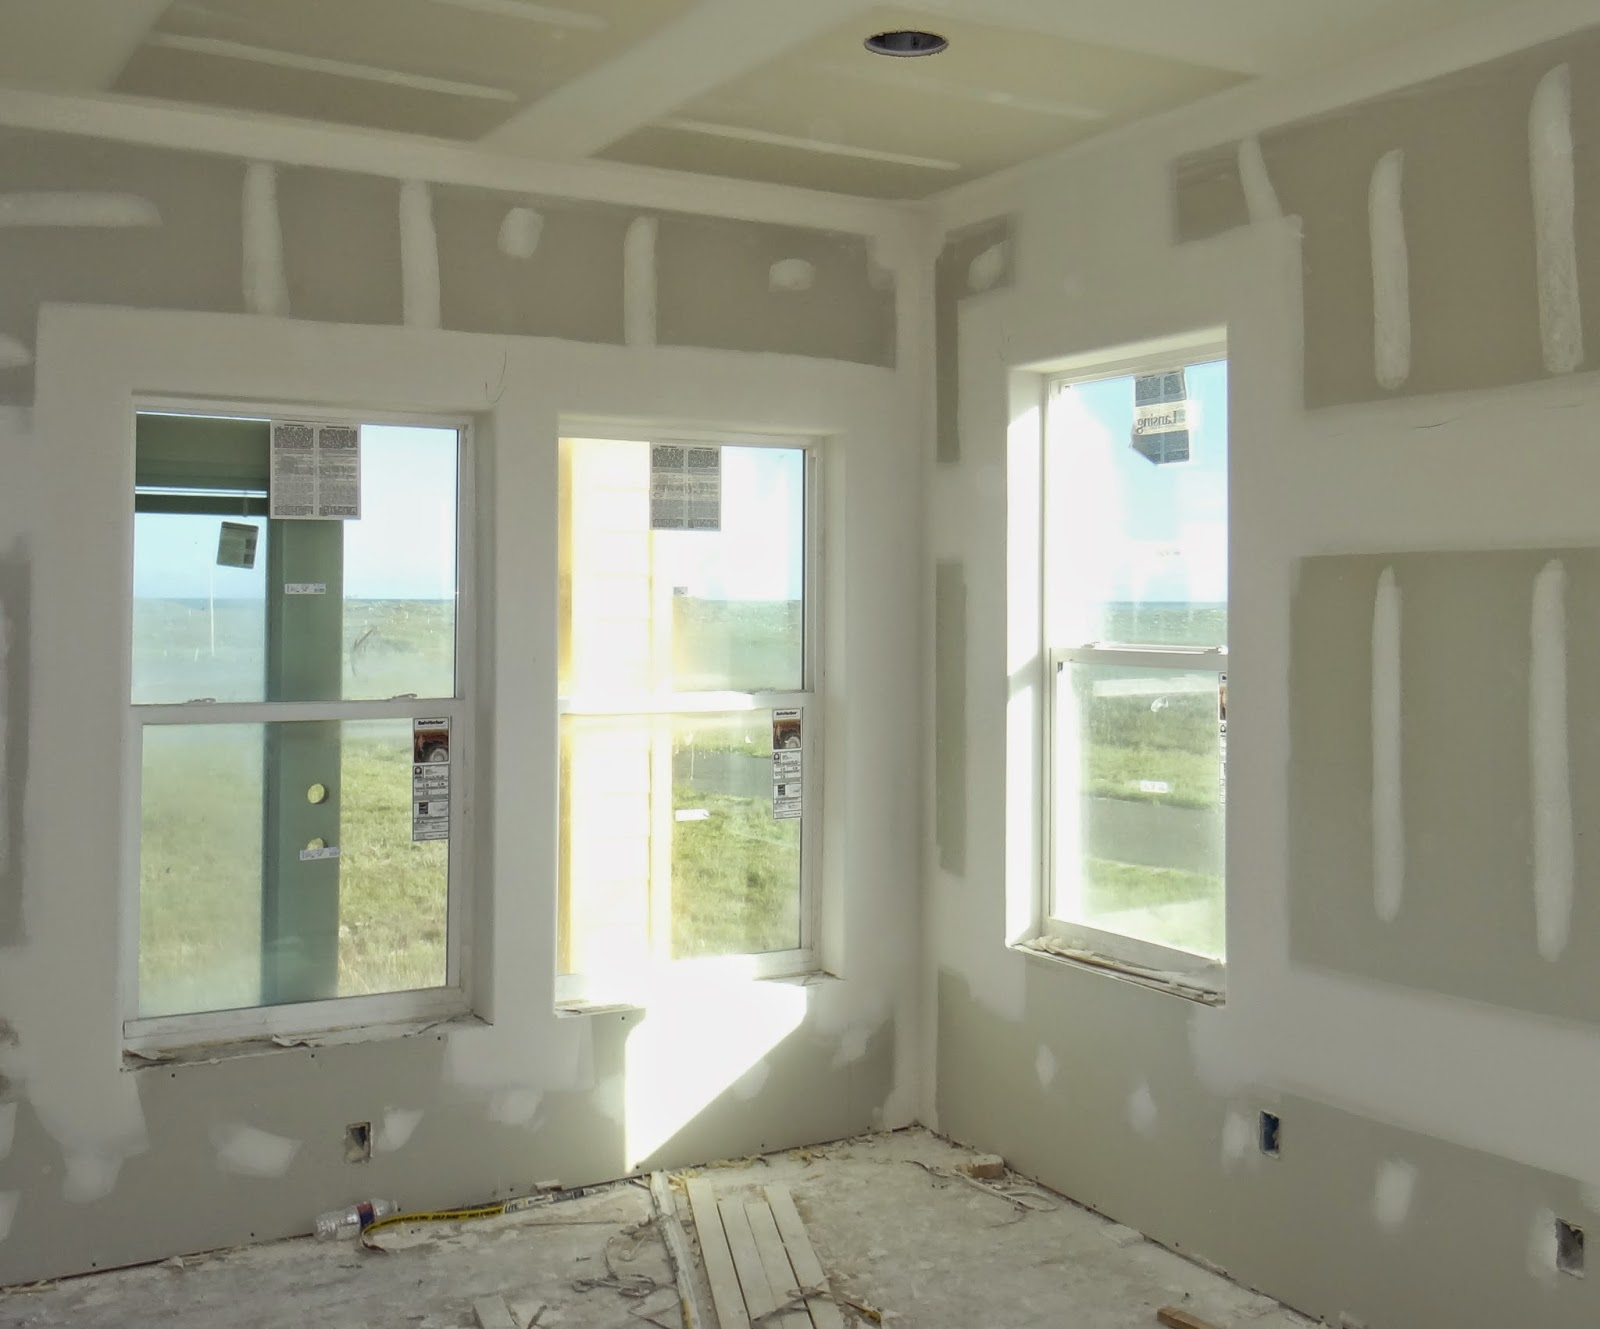 Sweet home mustang island drywall taped and sanded for Drywall around windows